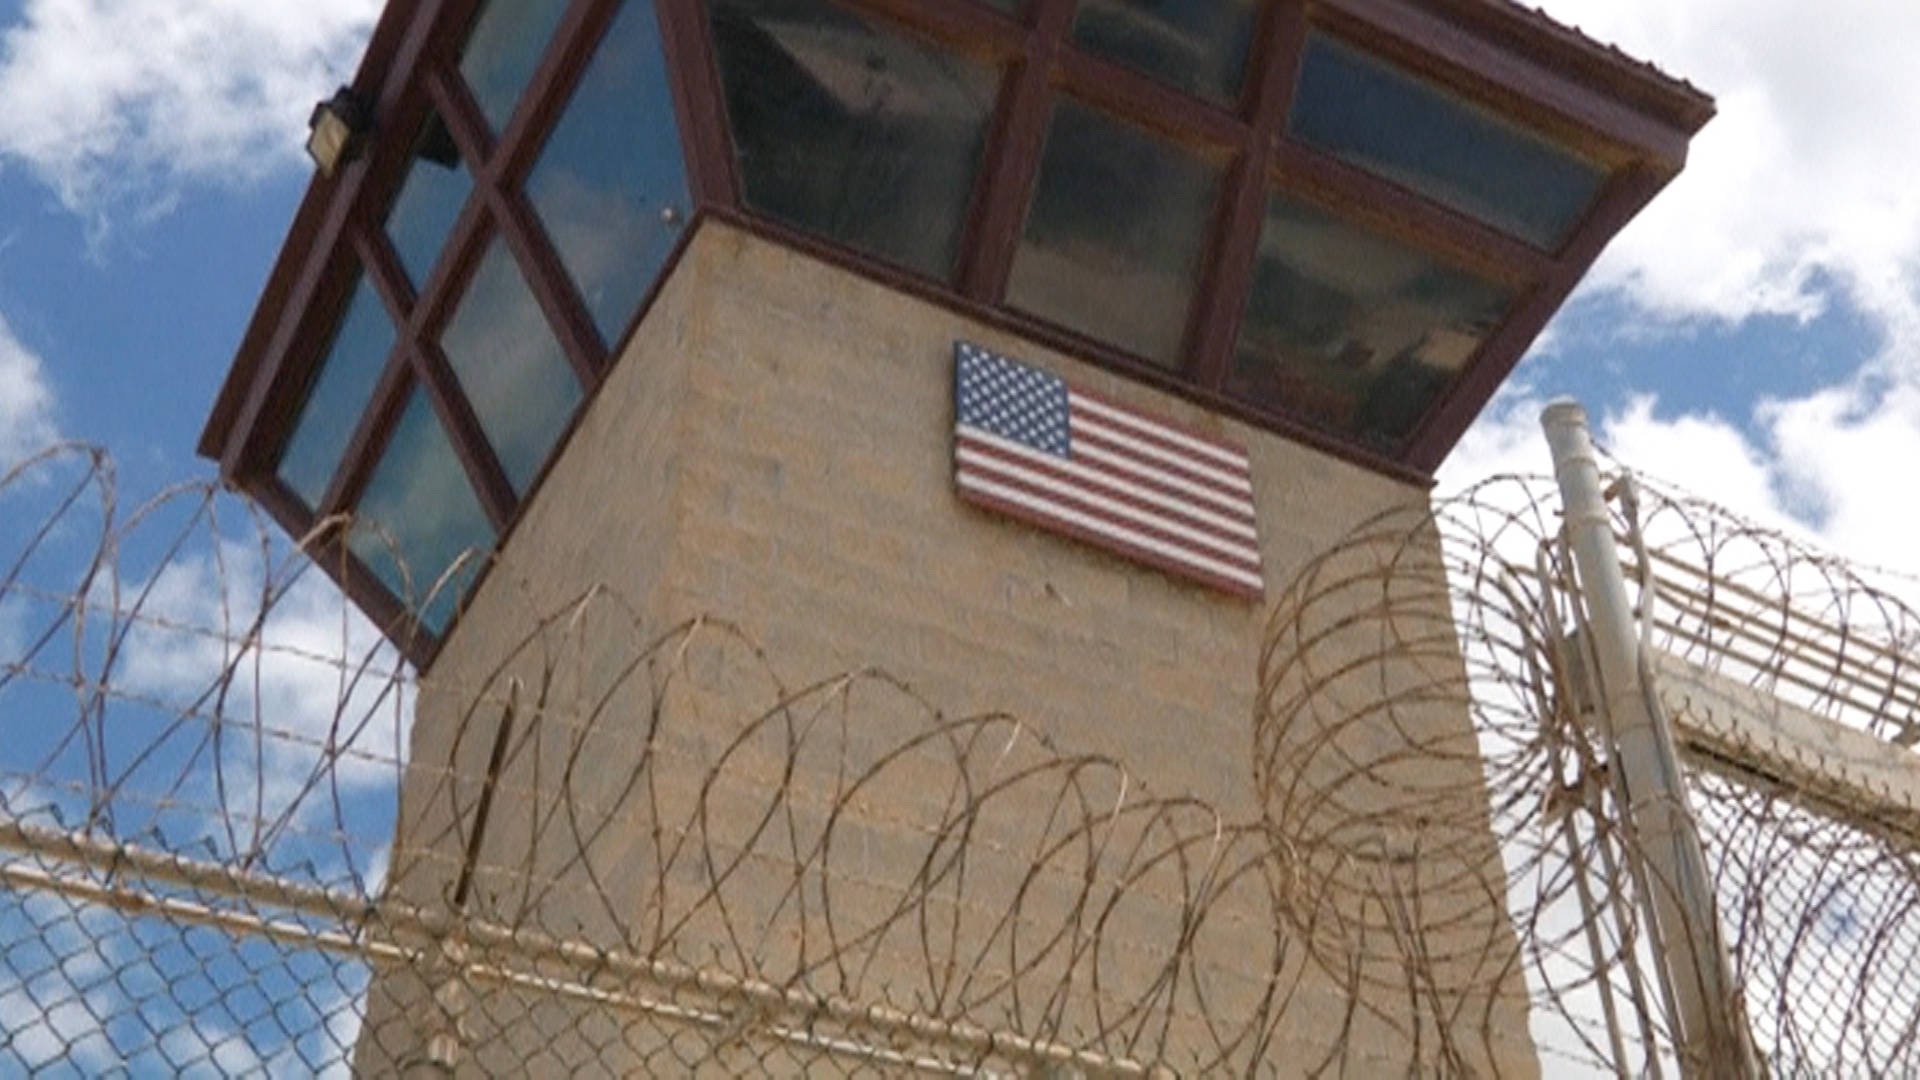 Read more about the article Calls Grow for Biden to Close Guantánamo Military Prison as U.S. Sanctions Cuba over Human Rights